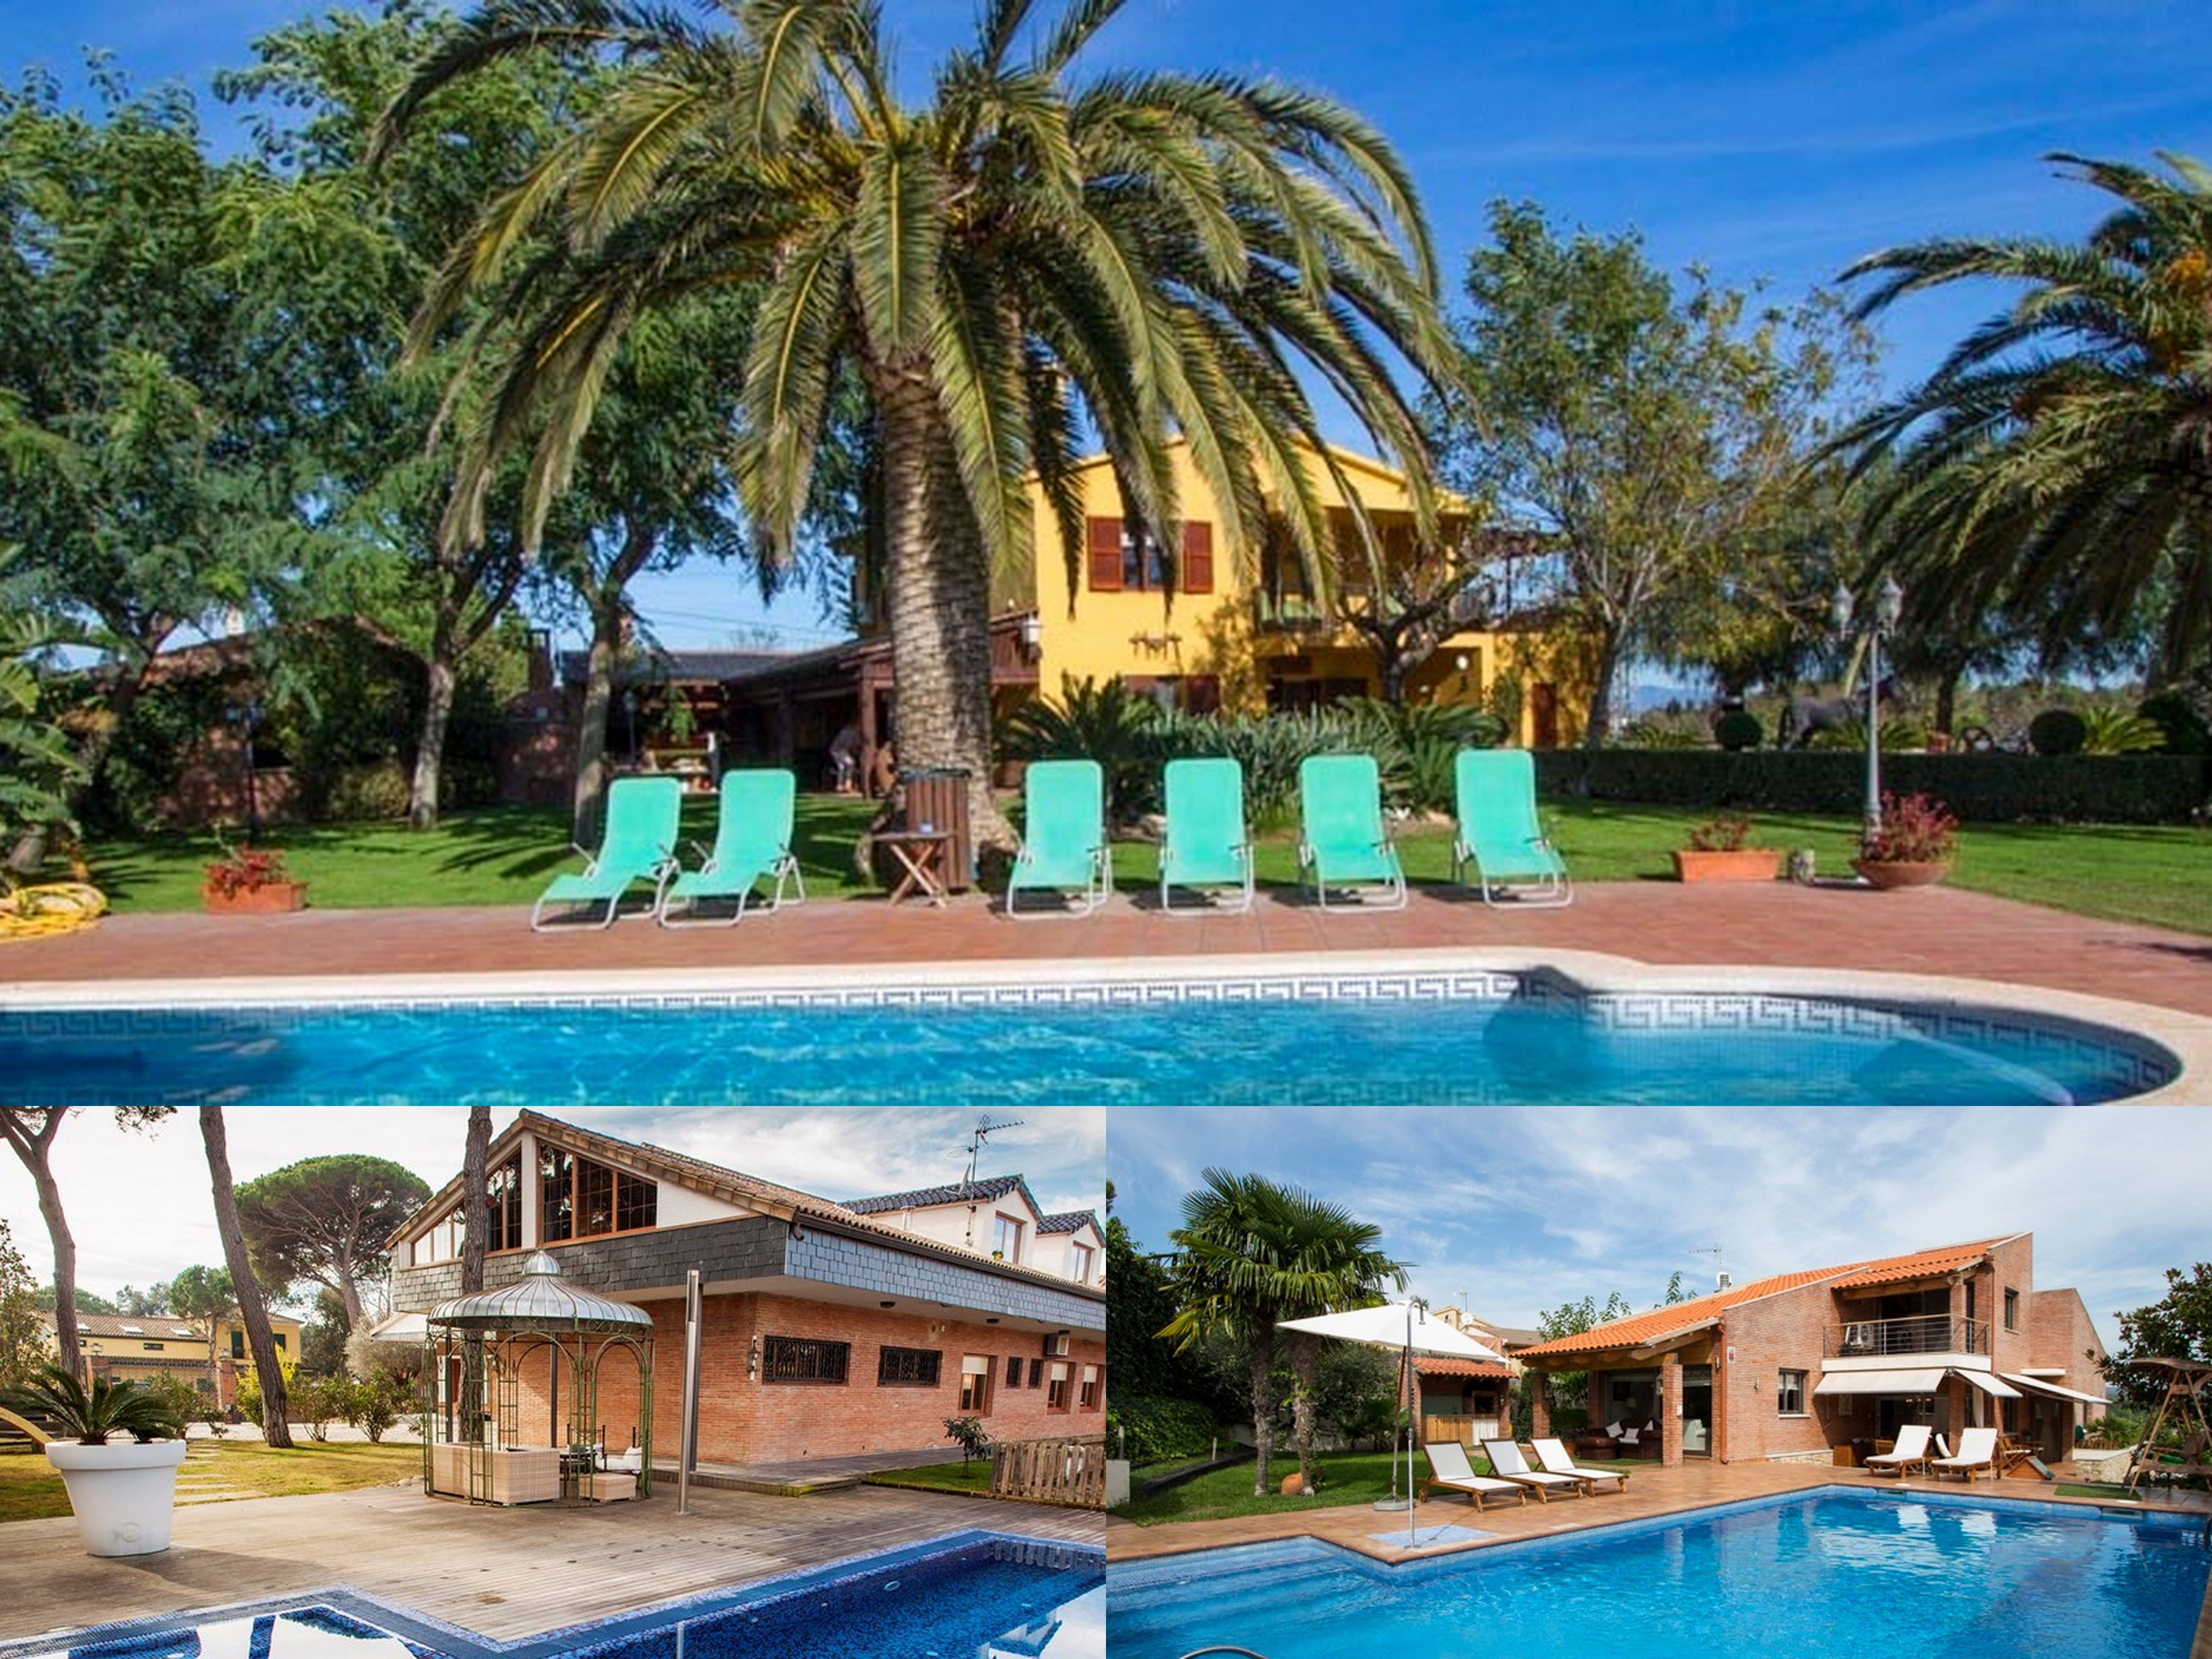 Holiday Rent villa Barcelona Catalunya Casas specialises in hand-picked,  exclusively managed family villa rentals with private pool for a luxury  vacation.